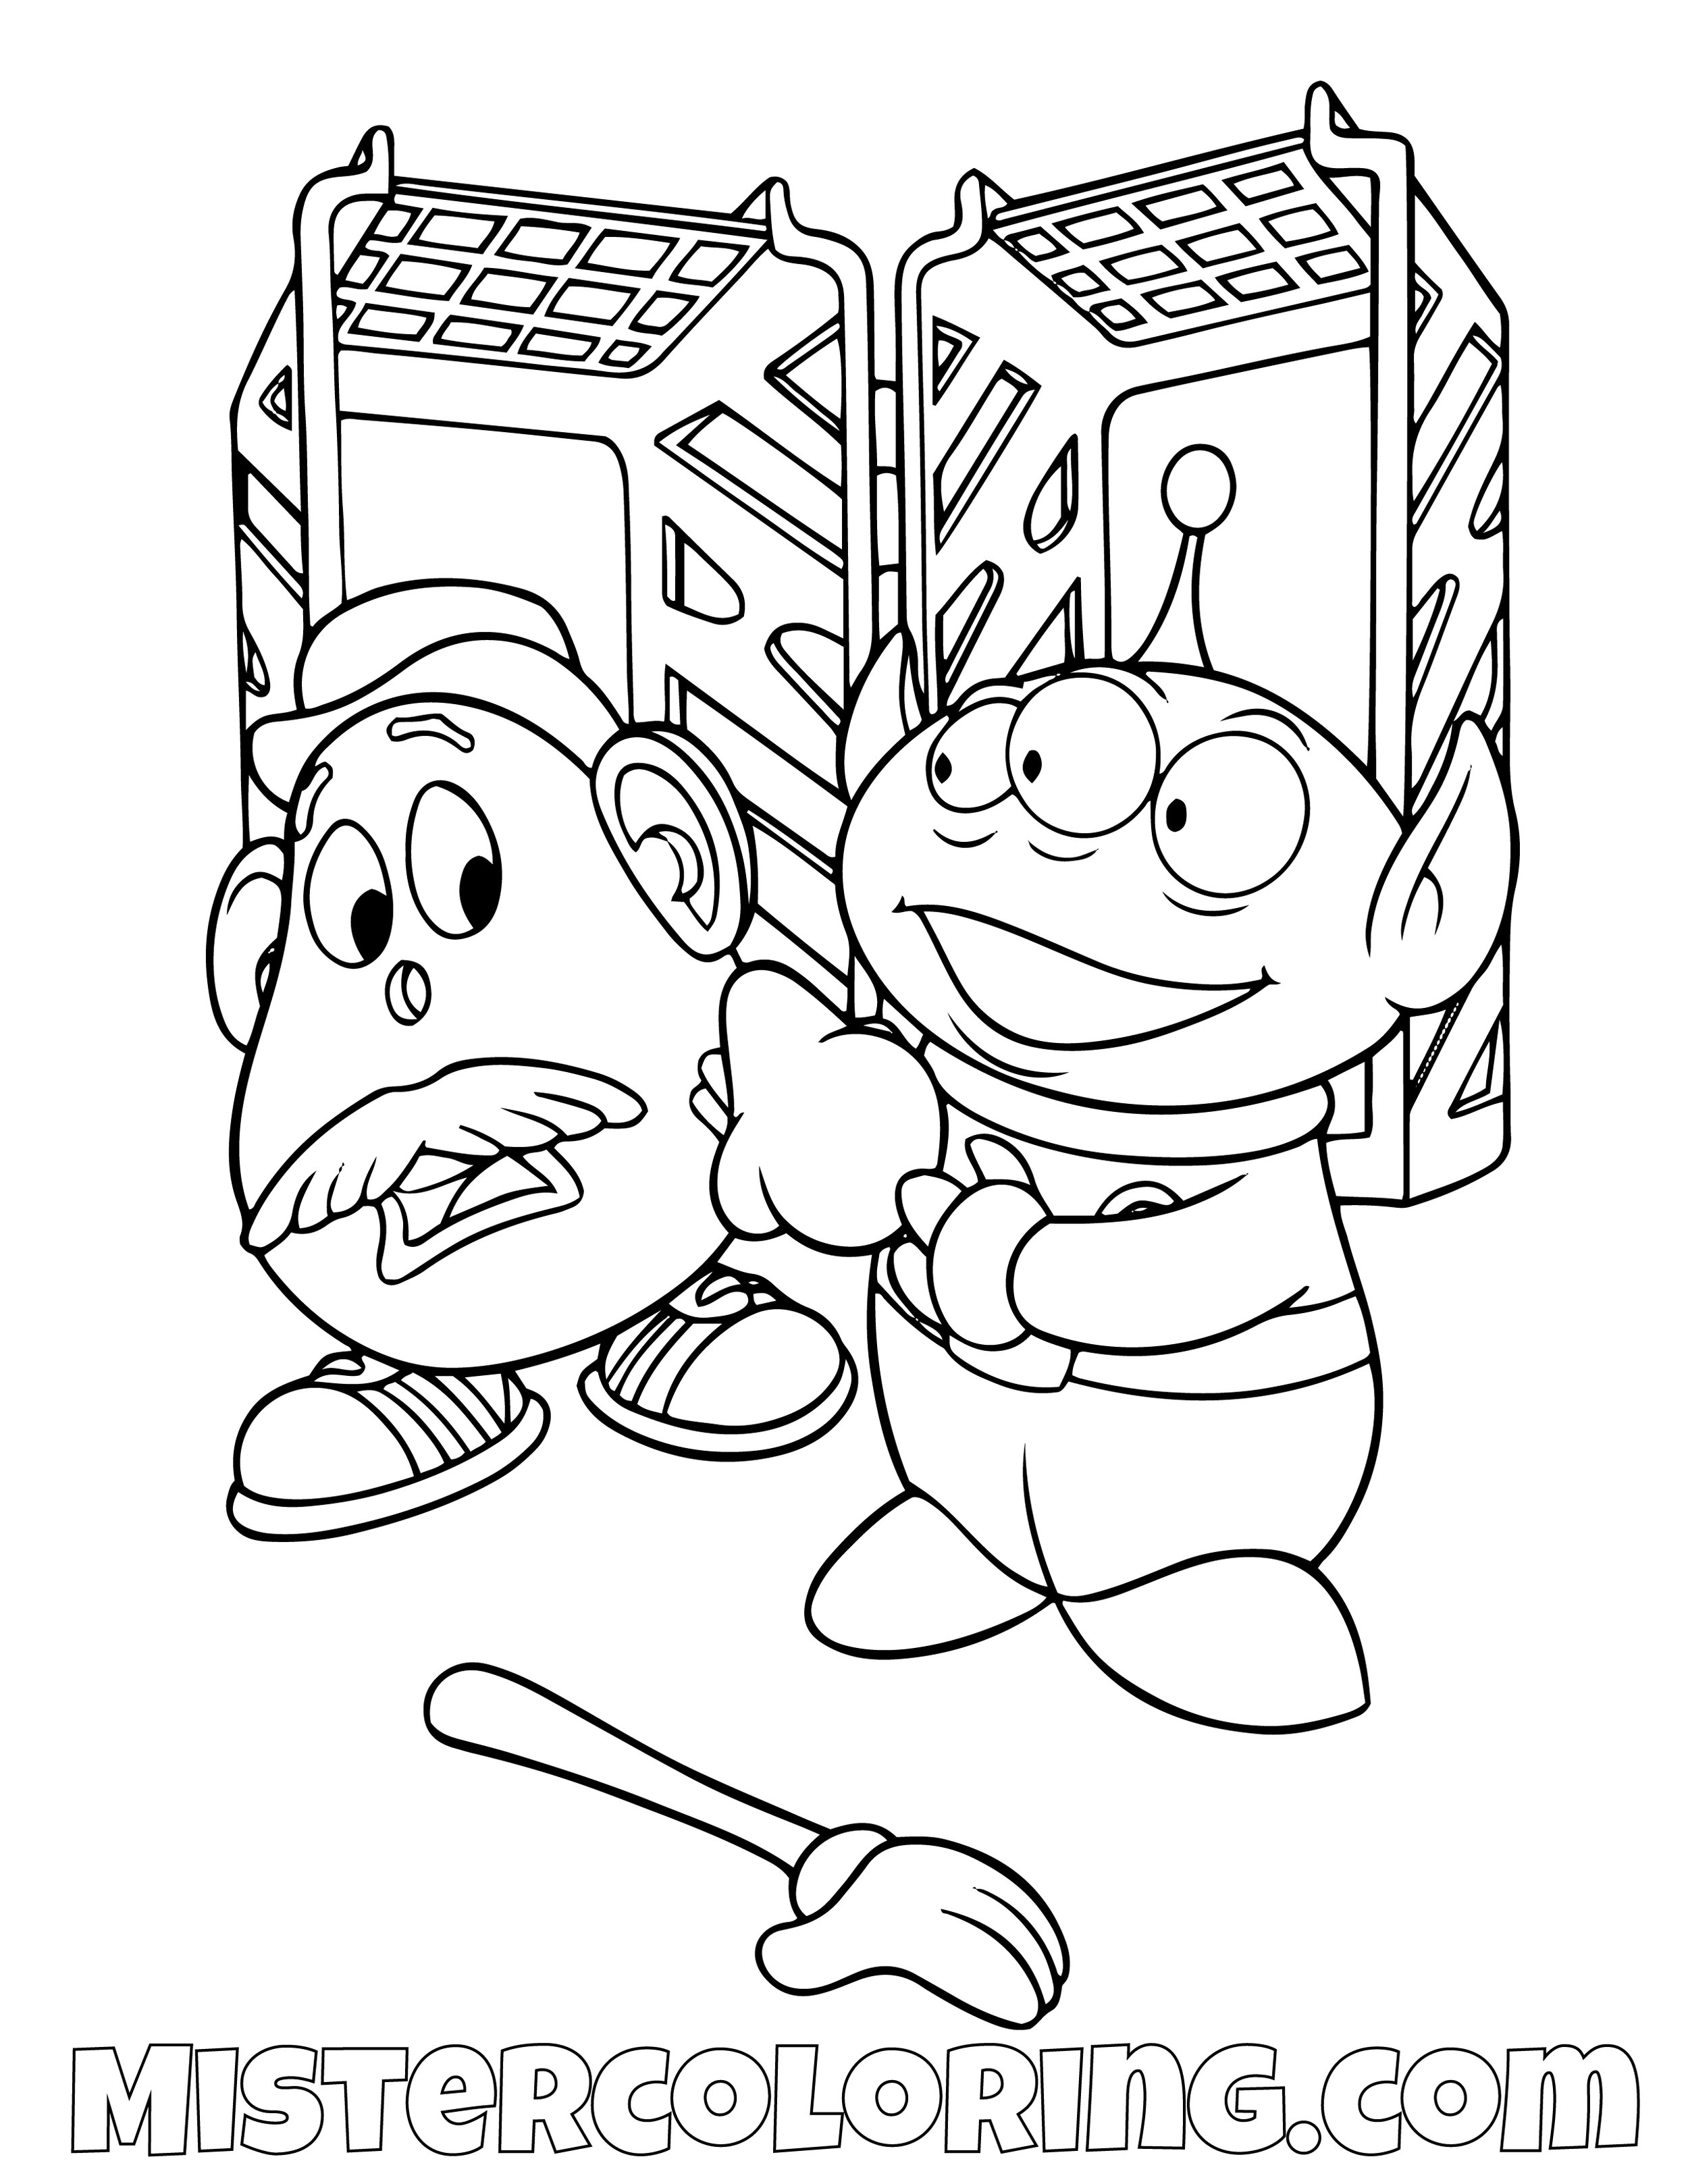 Alien Helping Mr Potato Head Toy Story Coloring Page